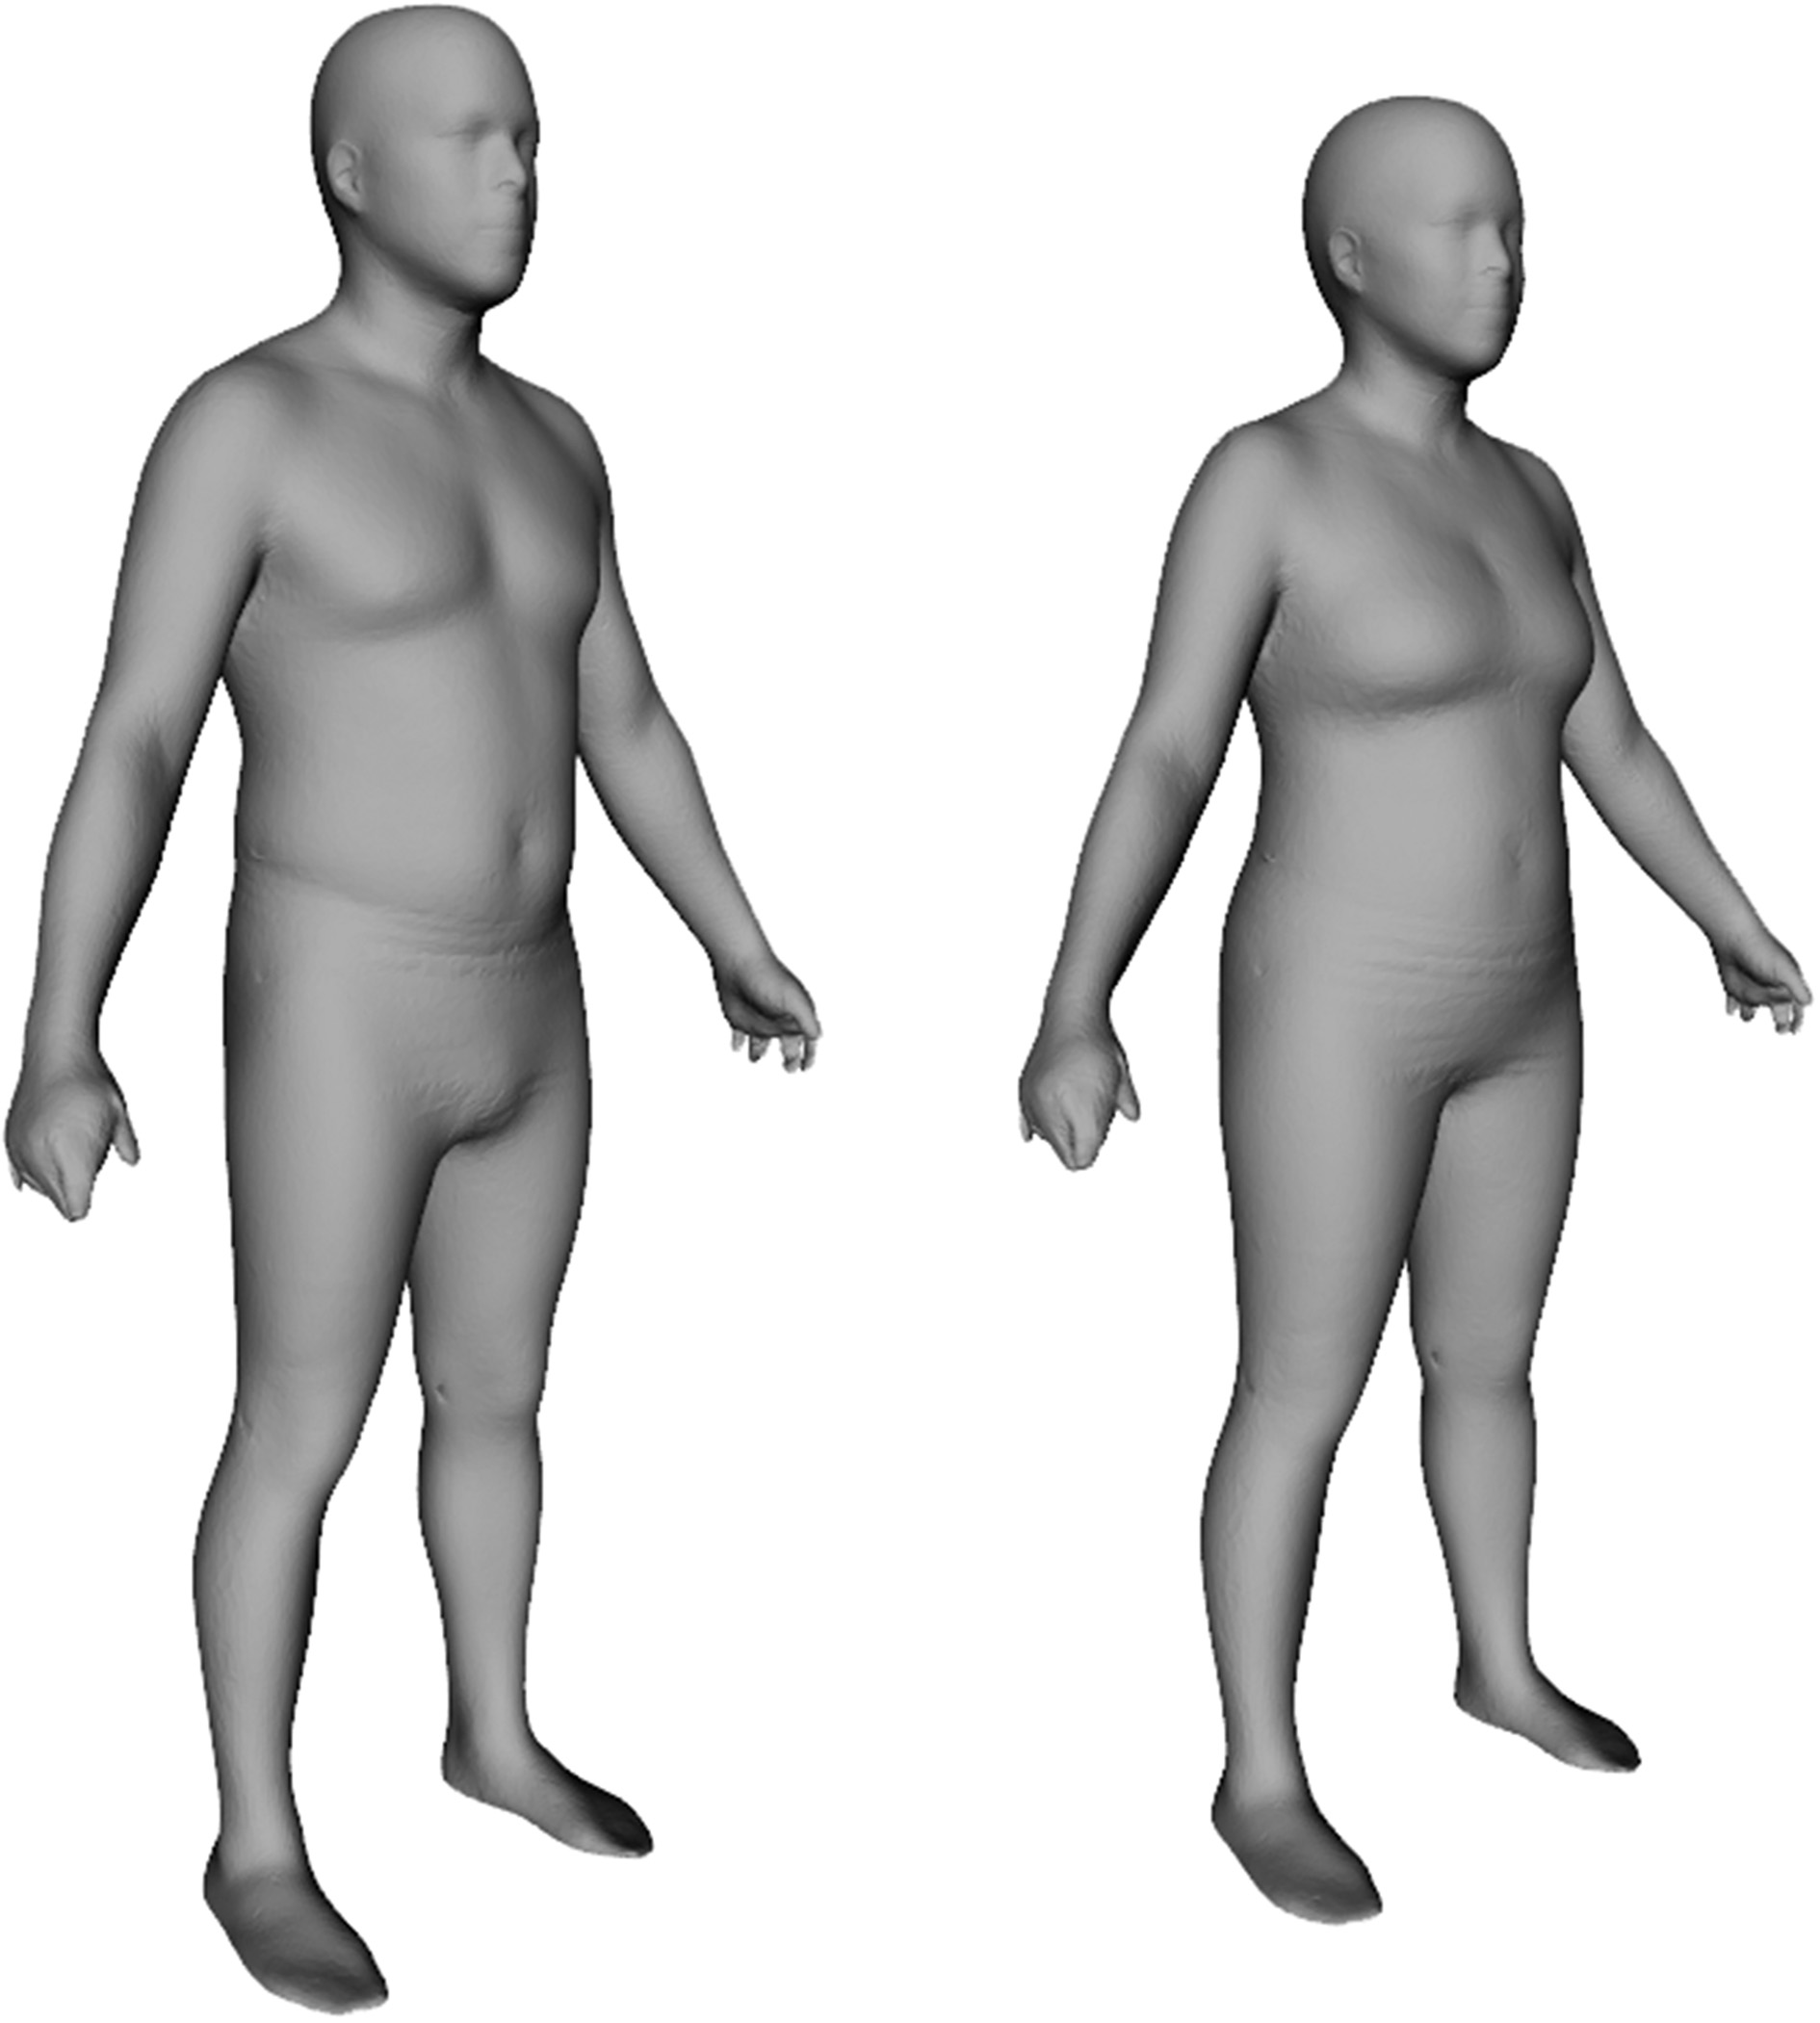 Detailed 3-dimensional body shape features predict body composition, blood metabolites, and functional strength: the Shape Up! studies